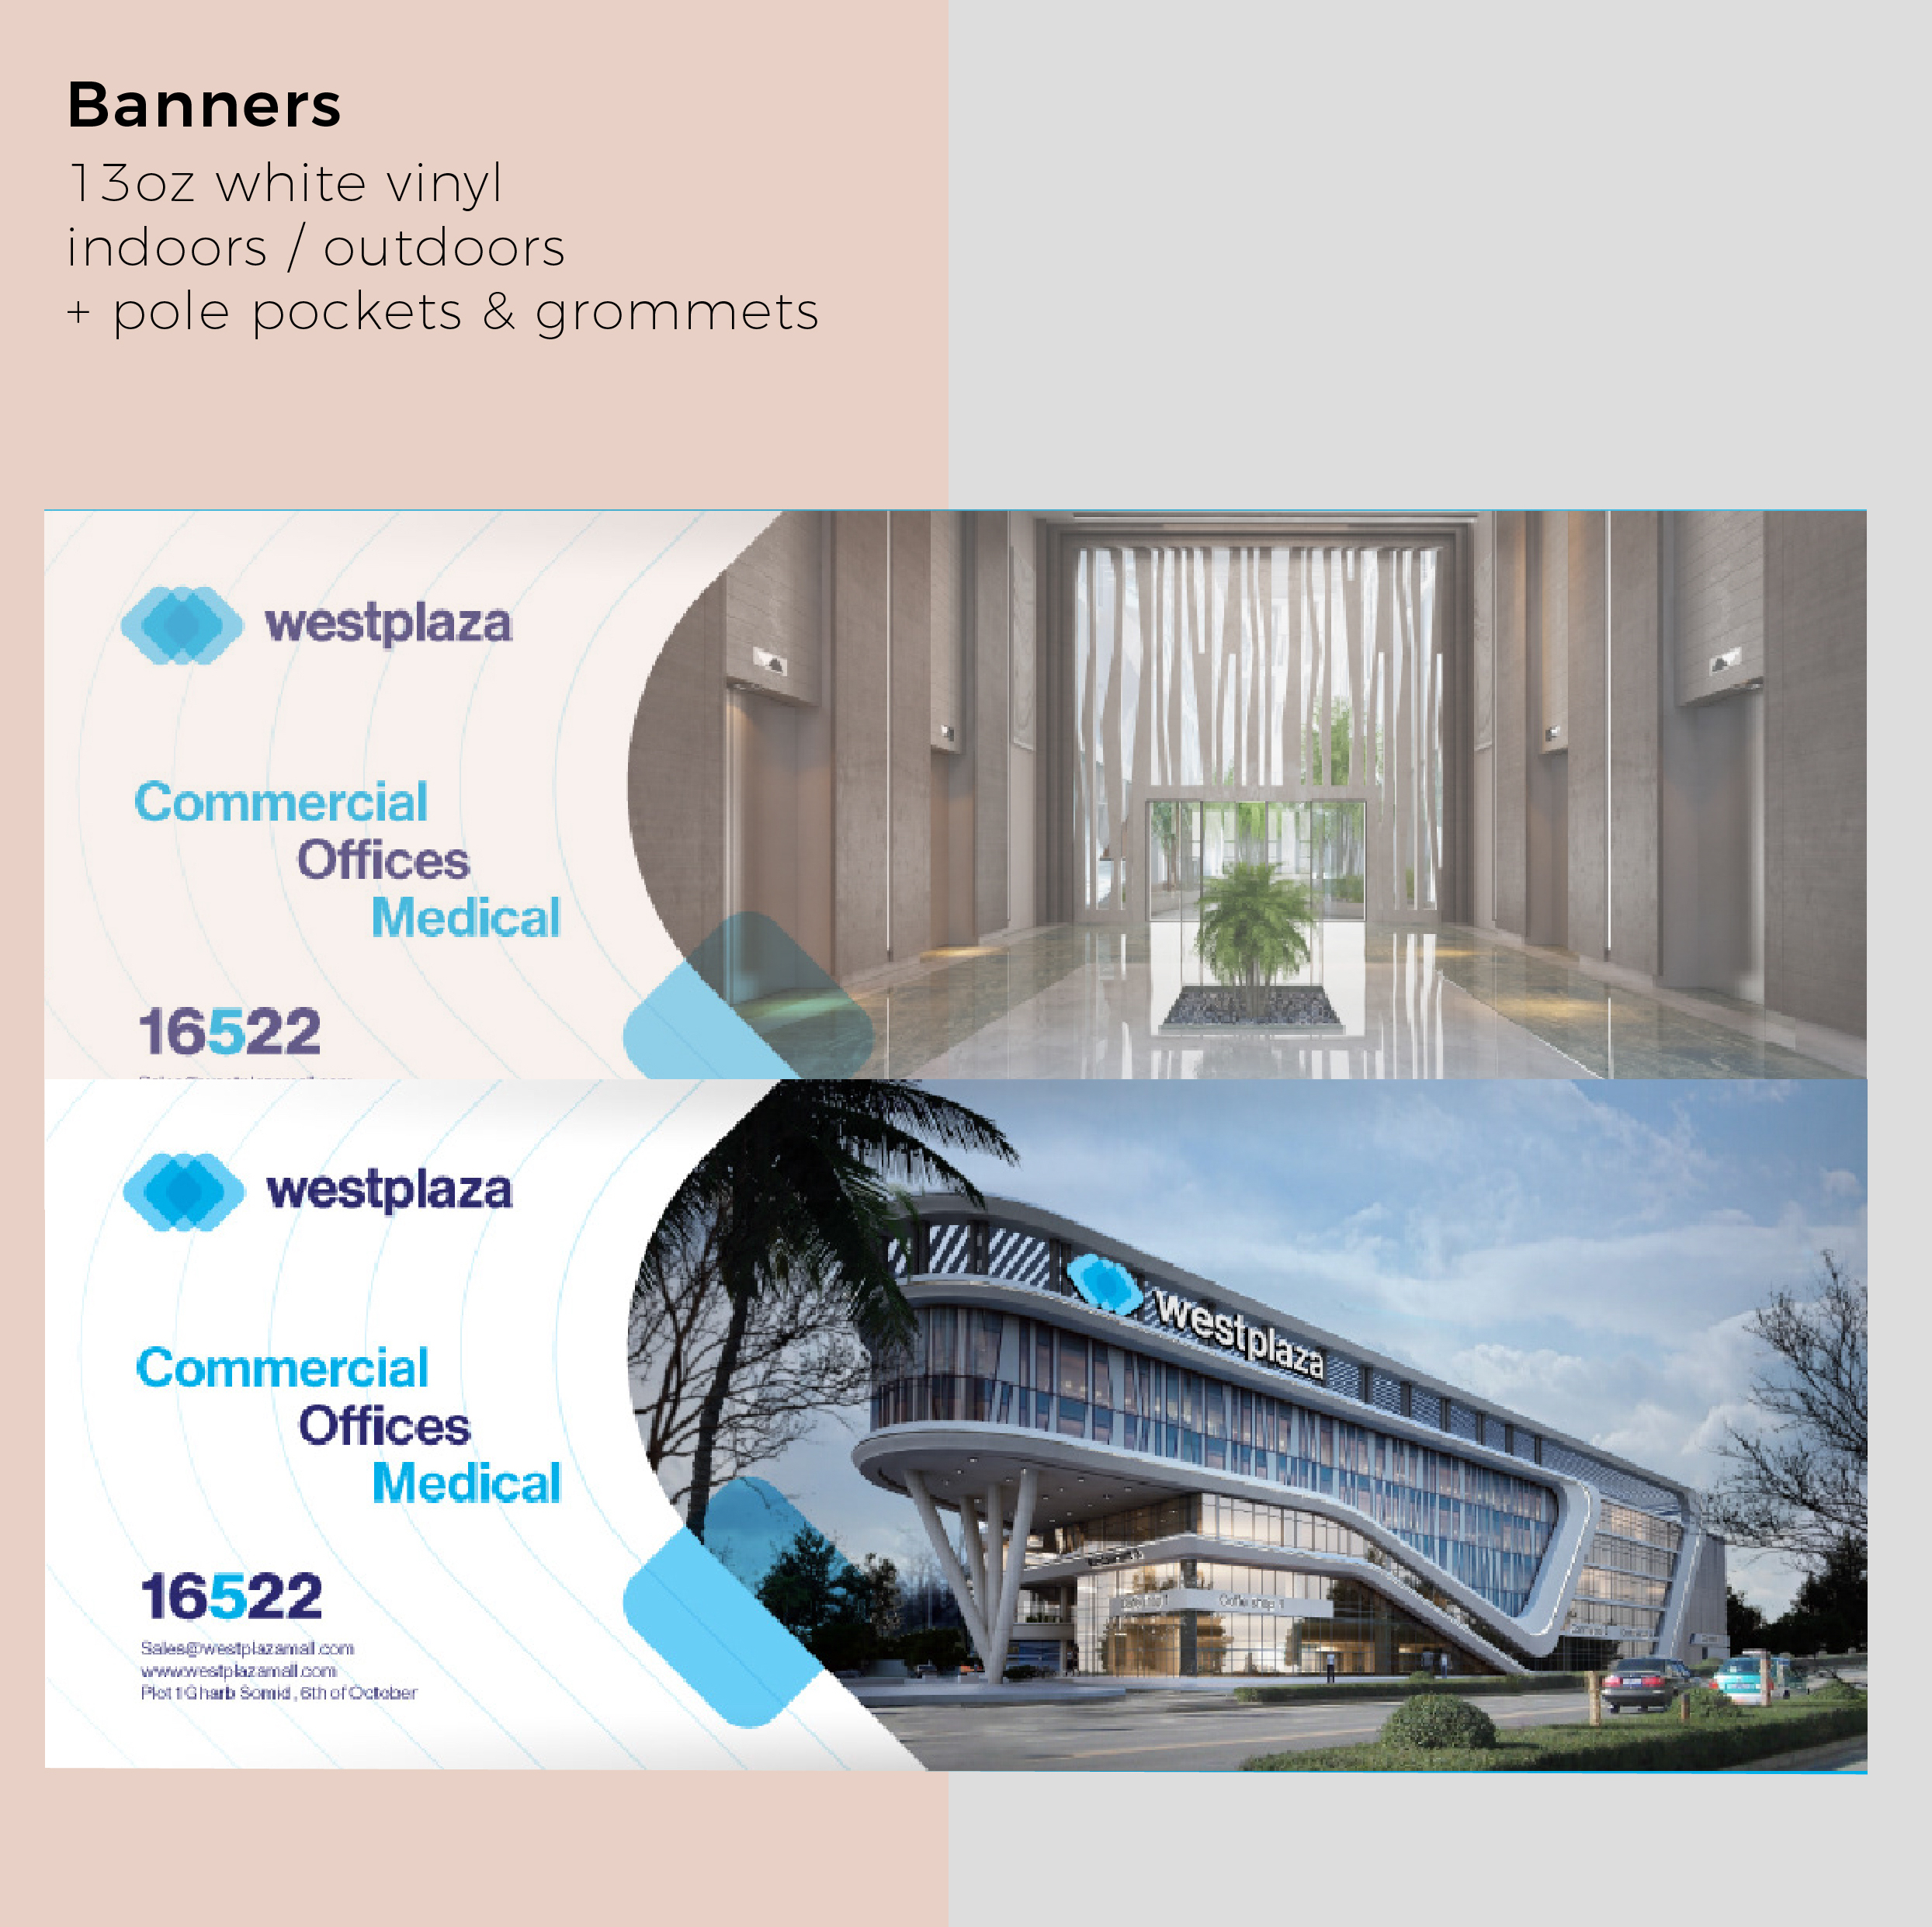 banners_product_example.jpg